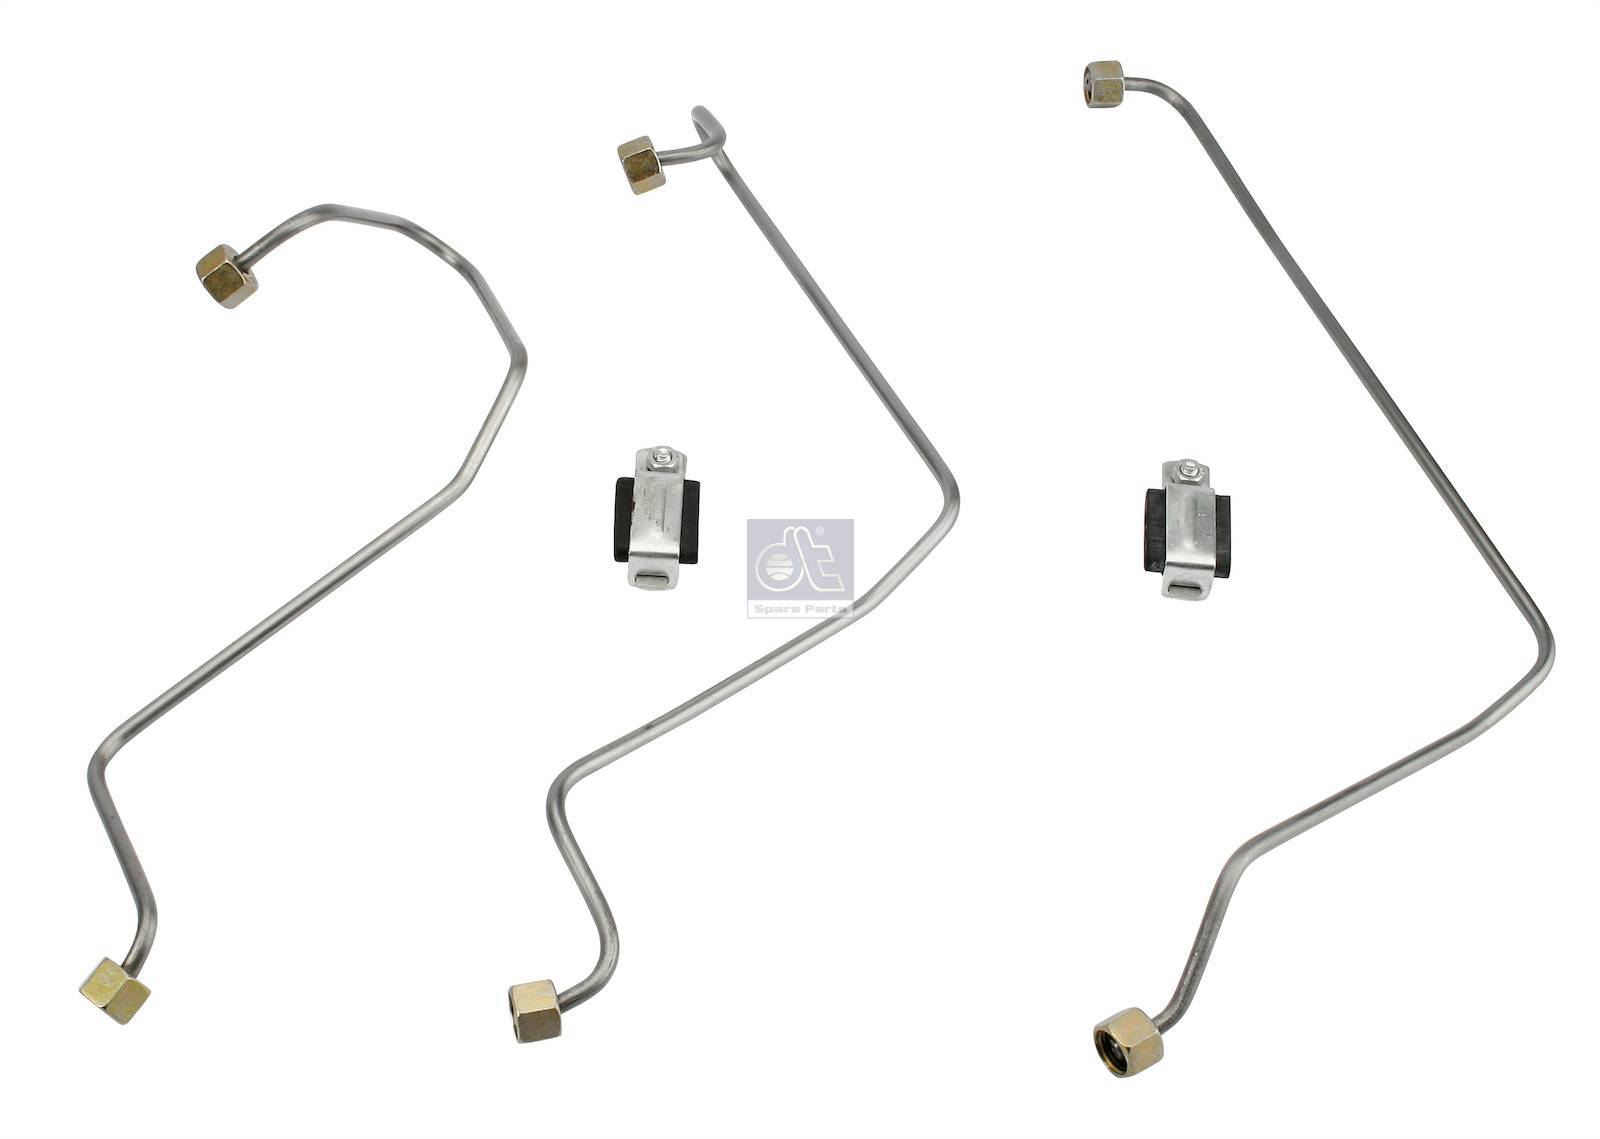 DT 1.12401 Injection line kit 1104965 suitable for Scania